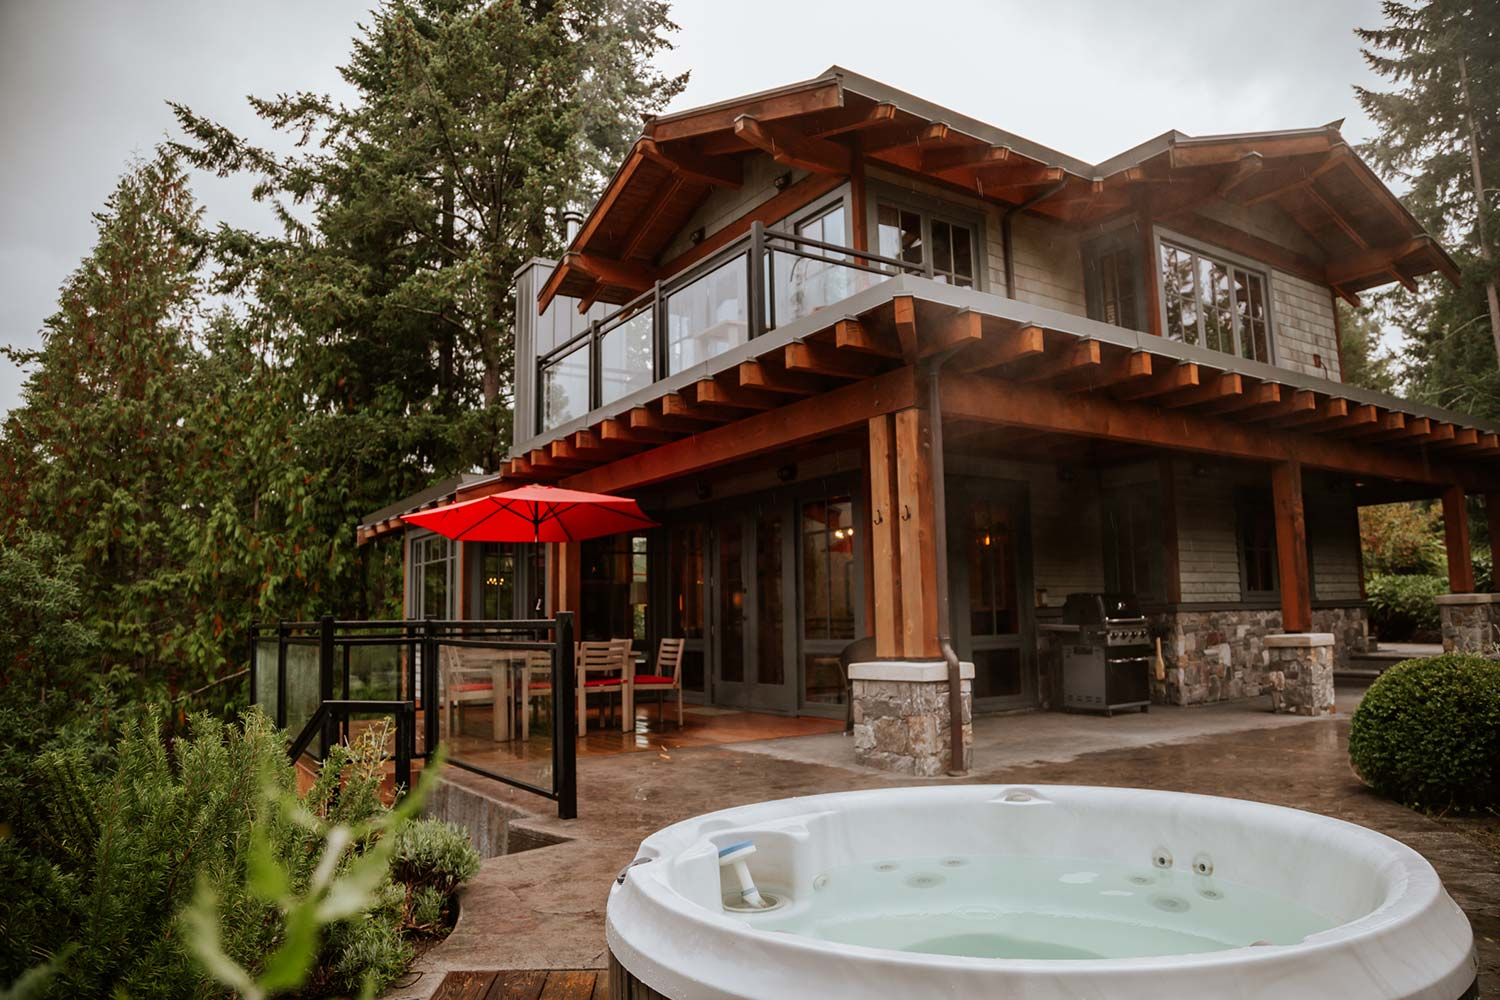 The outdoor area of this five-star holiday home features a hot tub for 4 people and a large gas barbecue.